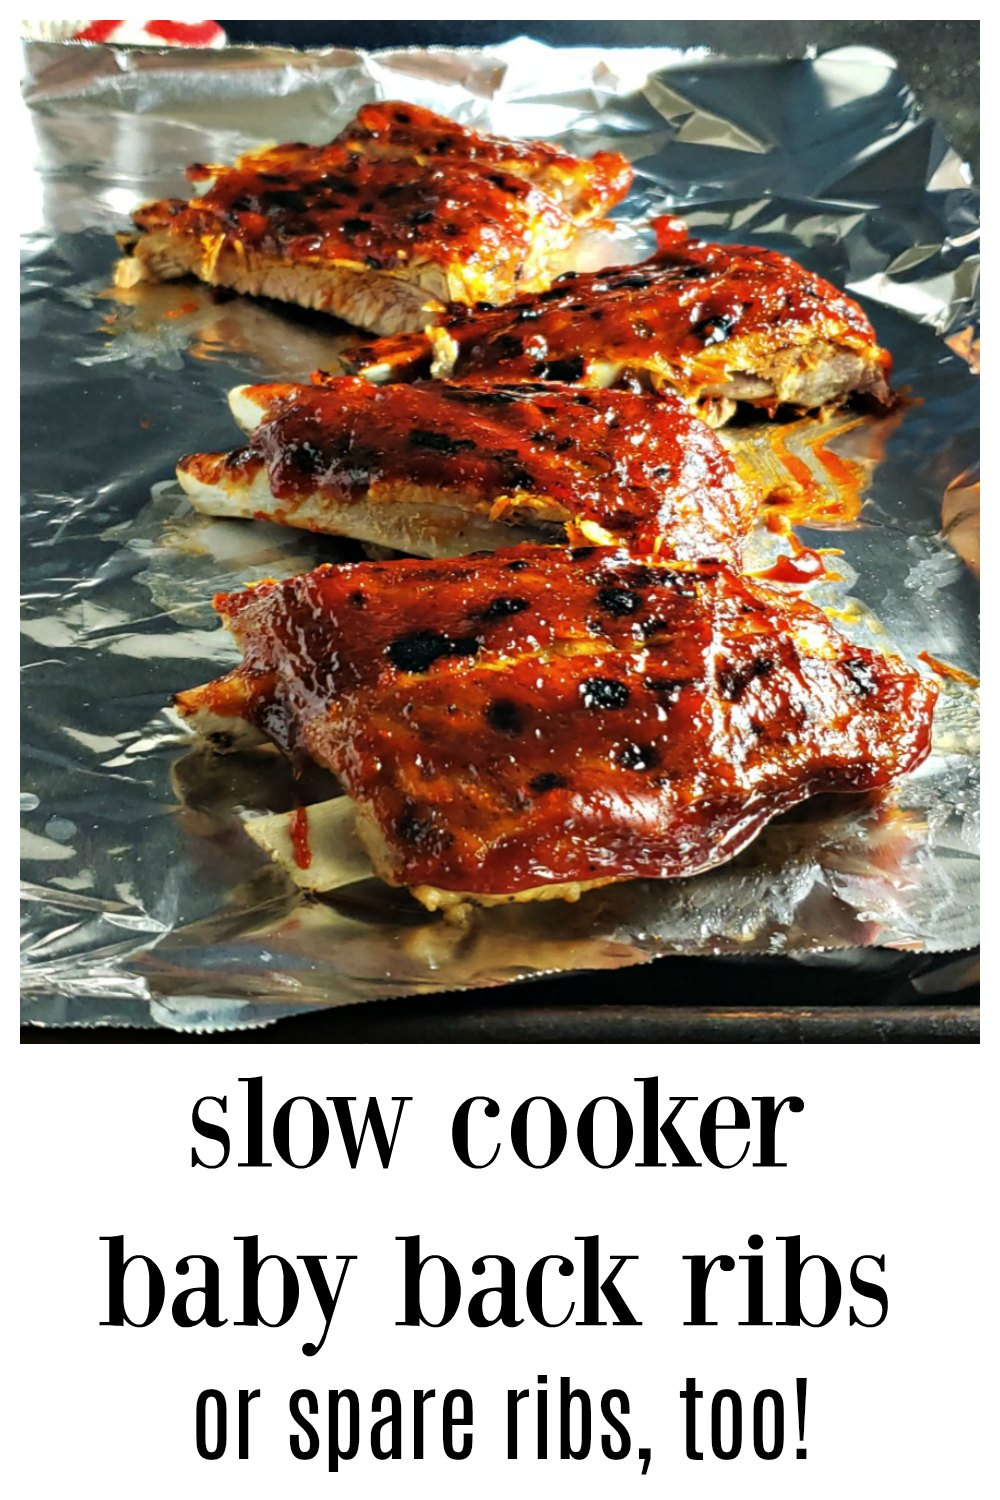 Slow Cooker Baby Back Ribs. Everything you need to know to turn out killer ribs from the slow cooker! Super easy & you'll beat the heat! #SlowCookerRibs #CrockpotRibs #SlowCookerBabyBackRibs #SlowCookerSpareRibs #EasySlowCookerRibs #EasyCrockpotRibs